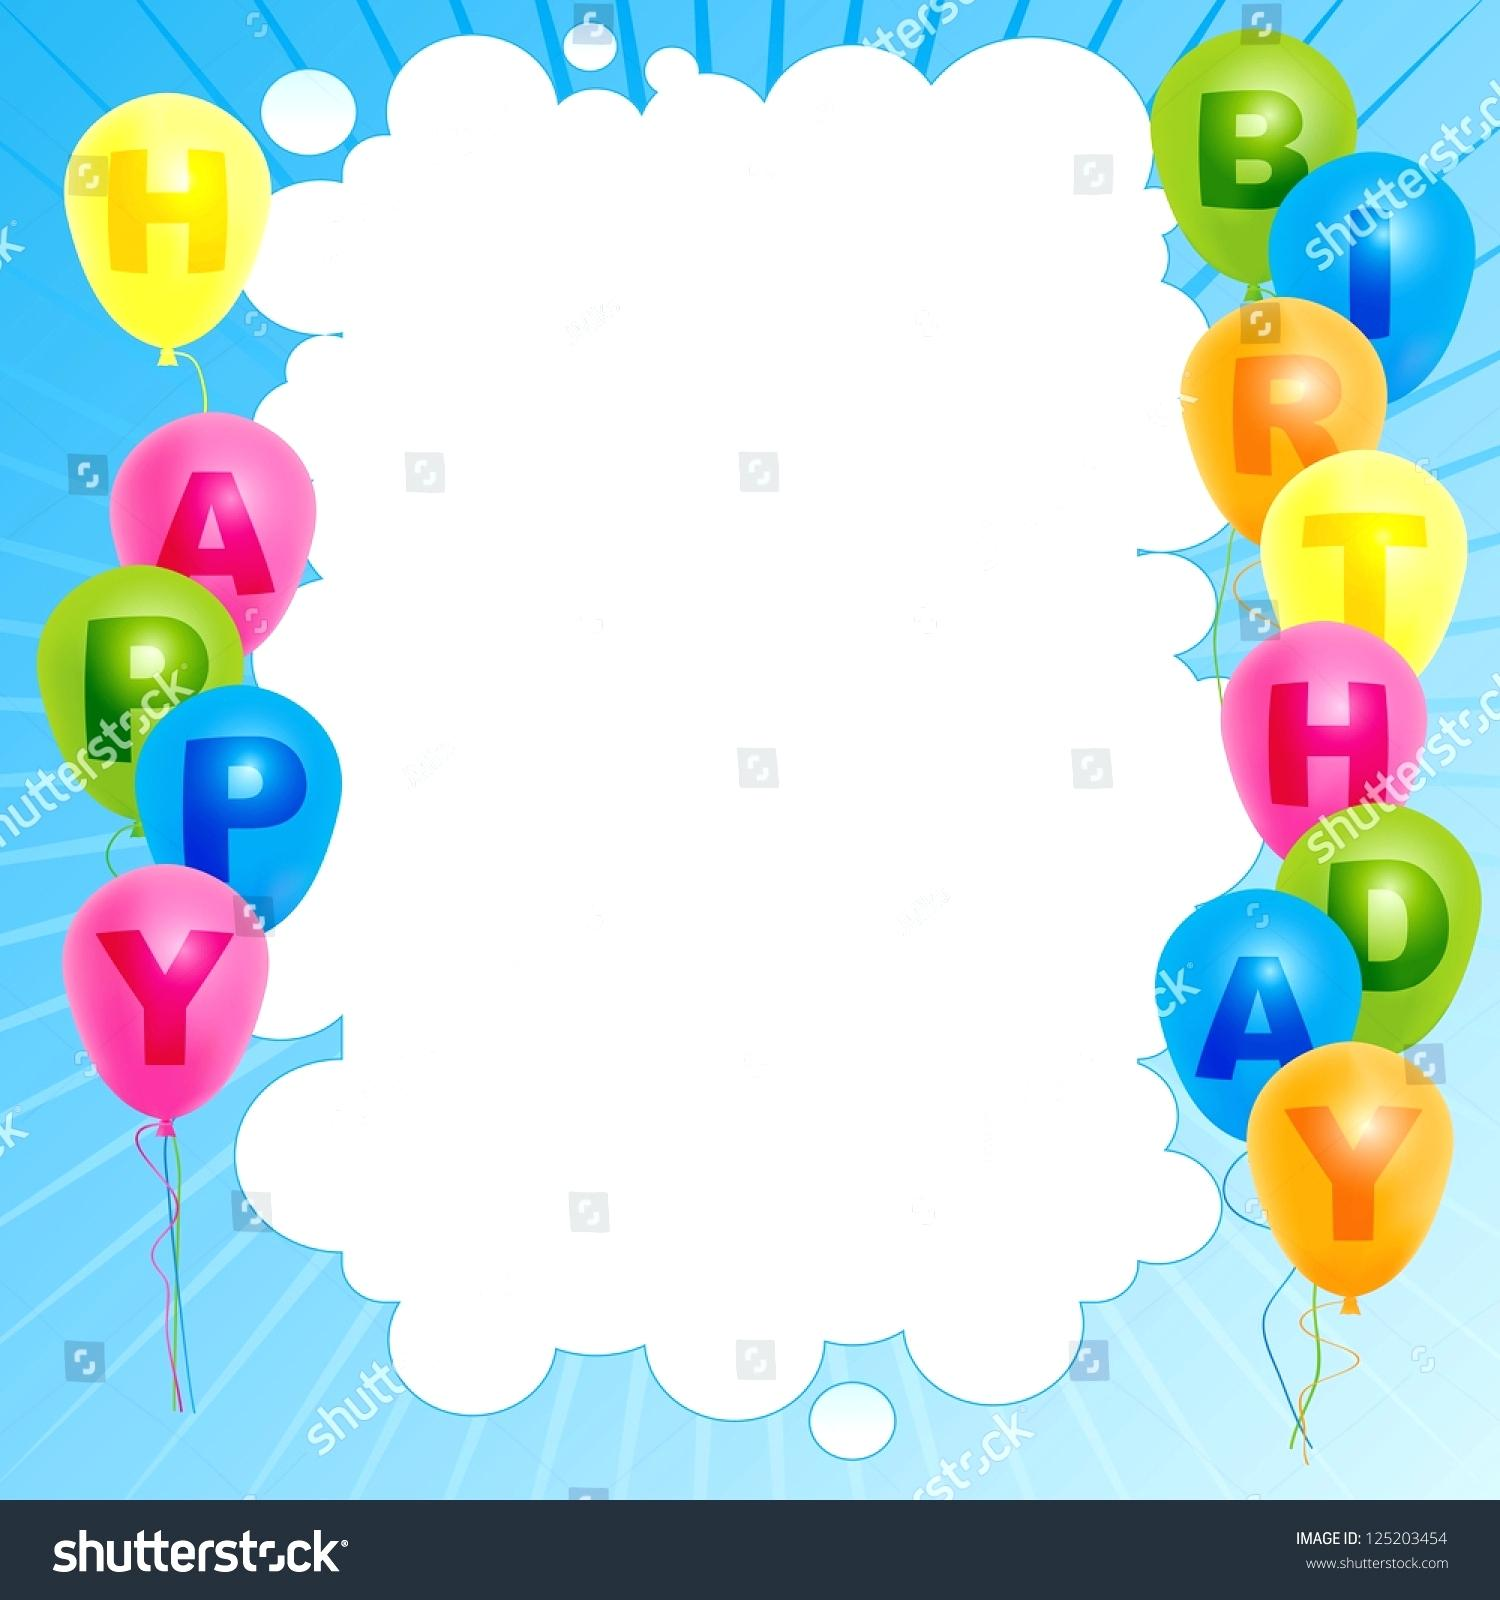 happy birthday photo maker ; happy-birthday-card-template-color-balloons-with-sign-and-online-maker-photo